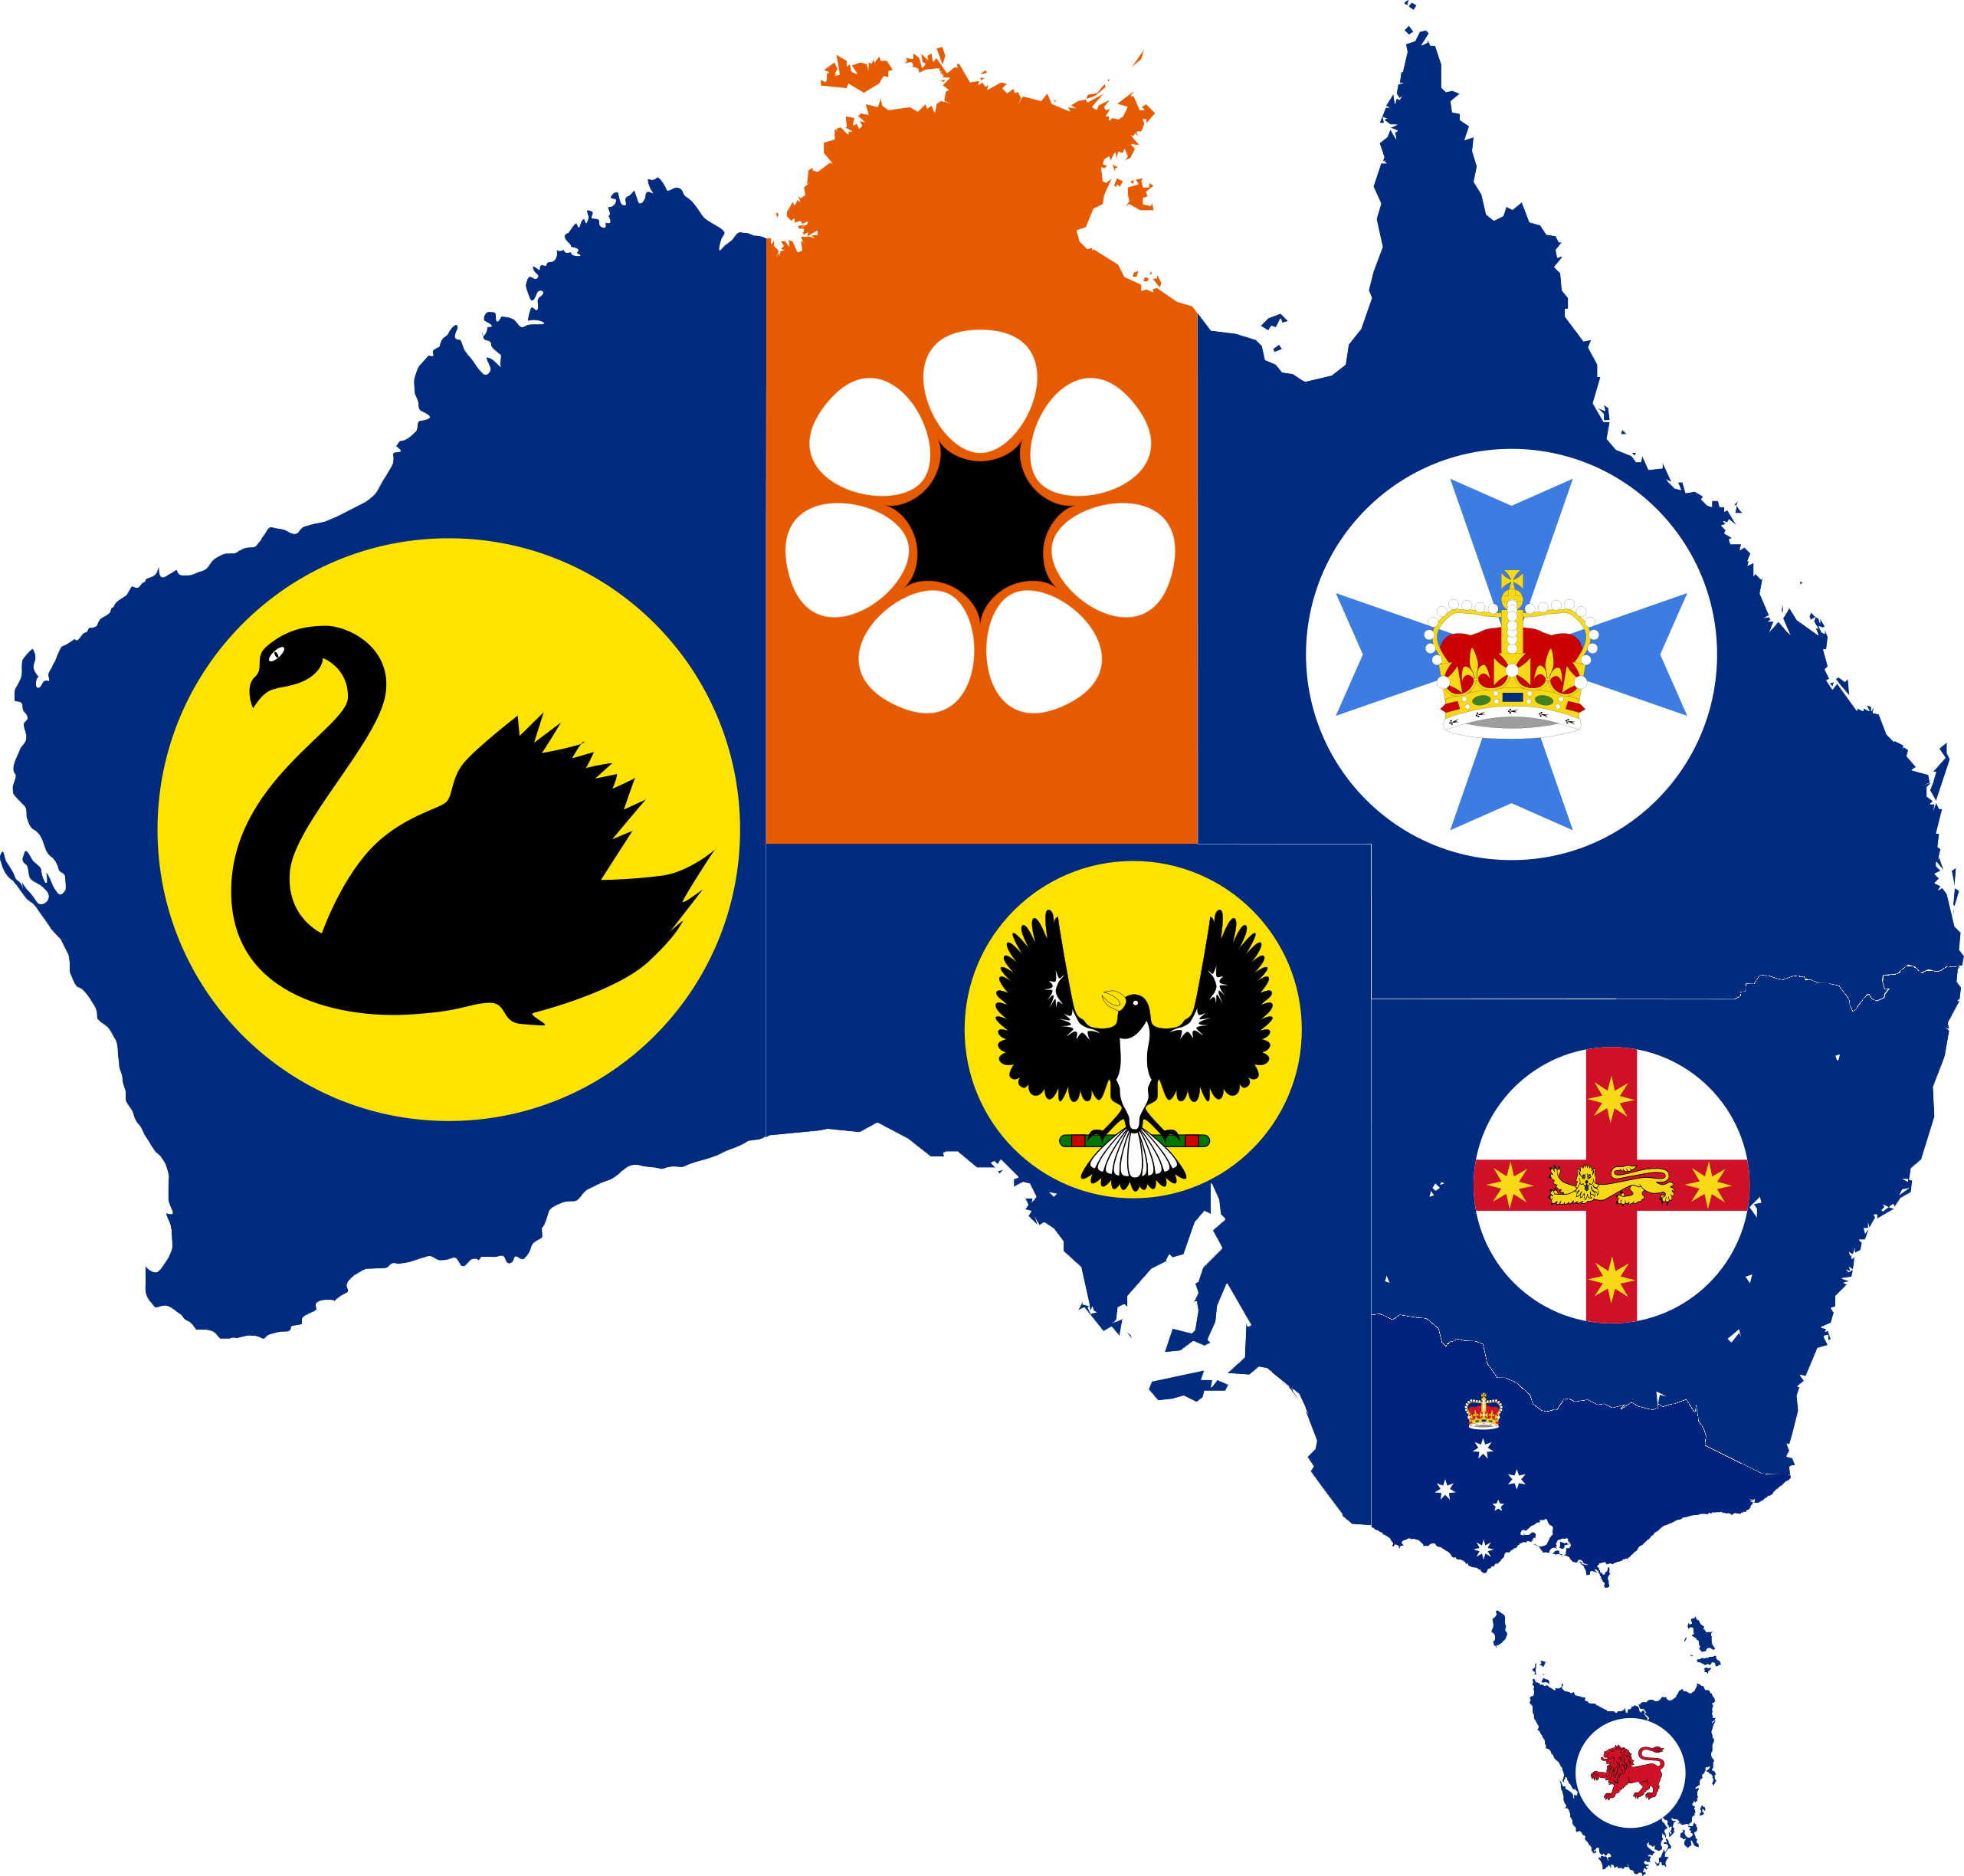 Map Of States Of Australia.File Flag Map Of States And Territories Of Australia Png Wikimedia